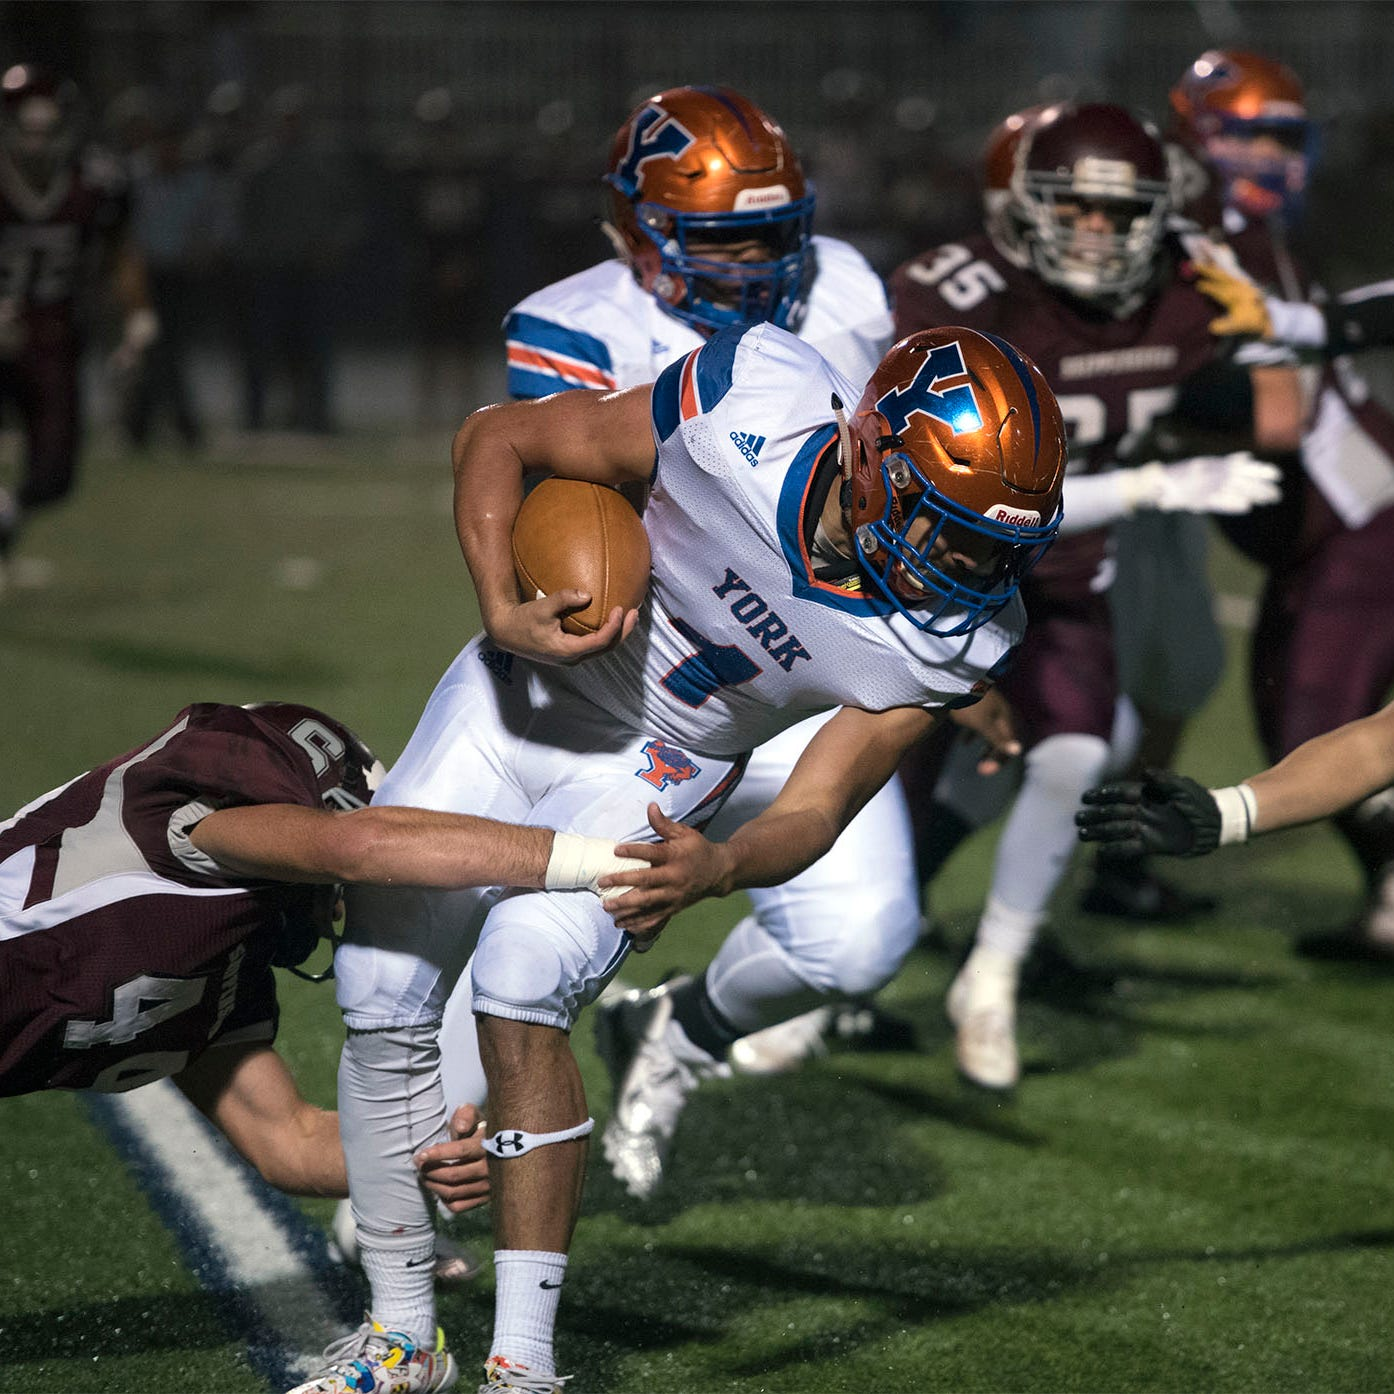 York High rumbles to playoff win over Shippensburg with second-half comeback